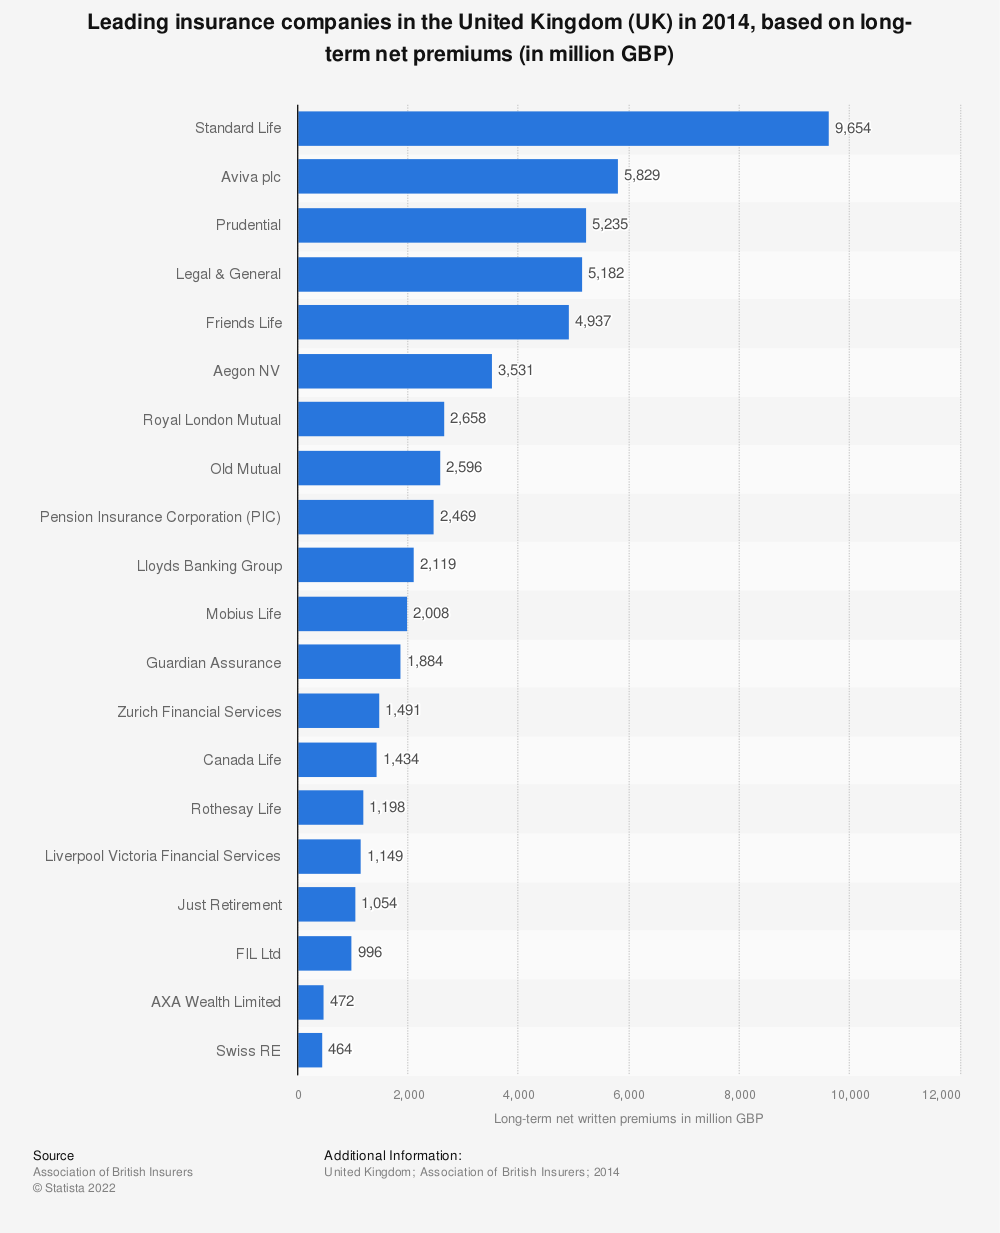 Statistic: Leading insurance companies in the United Kingdom (UK) in 2014, based on long-term net premiums (in million GBP) | Statista